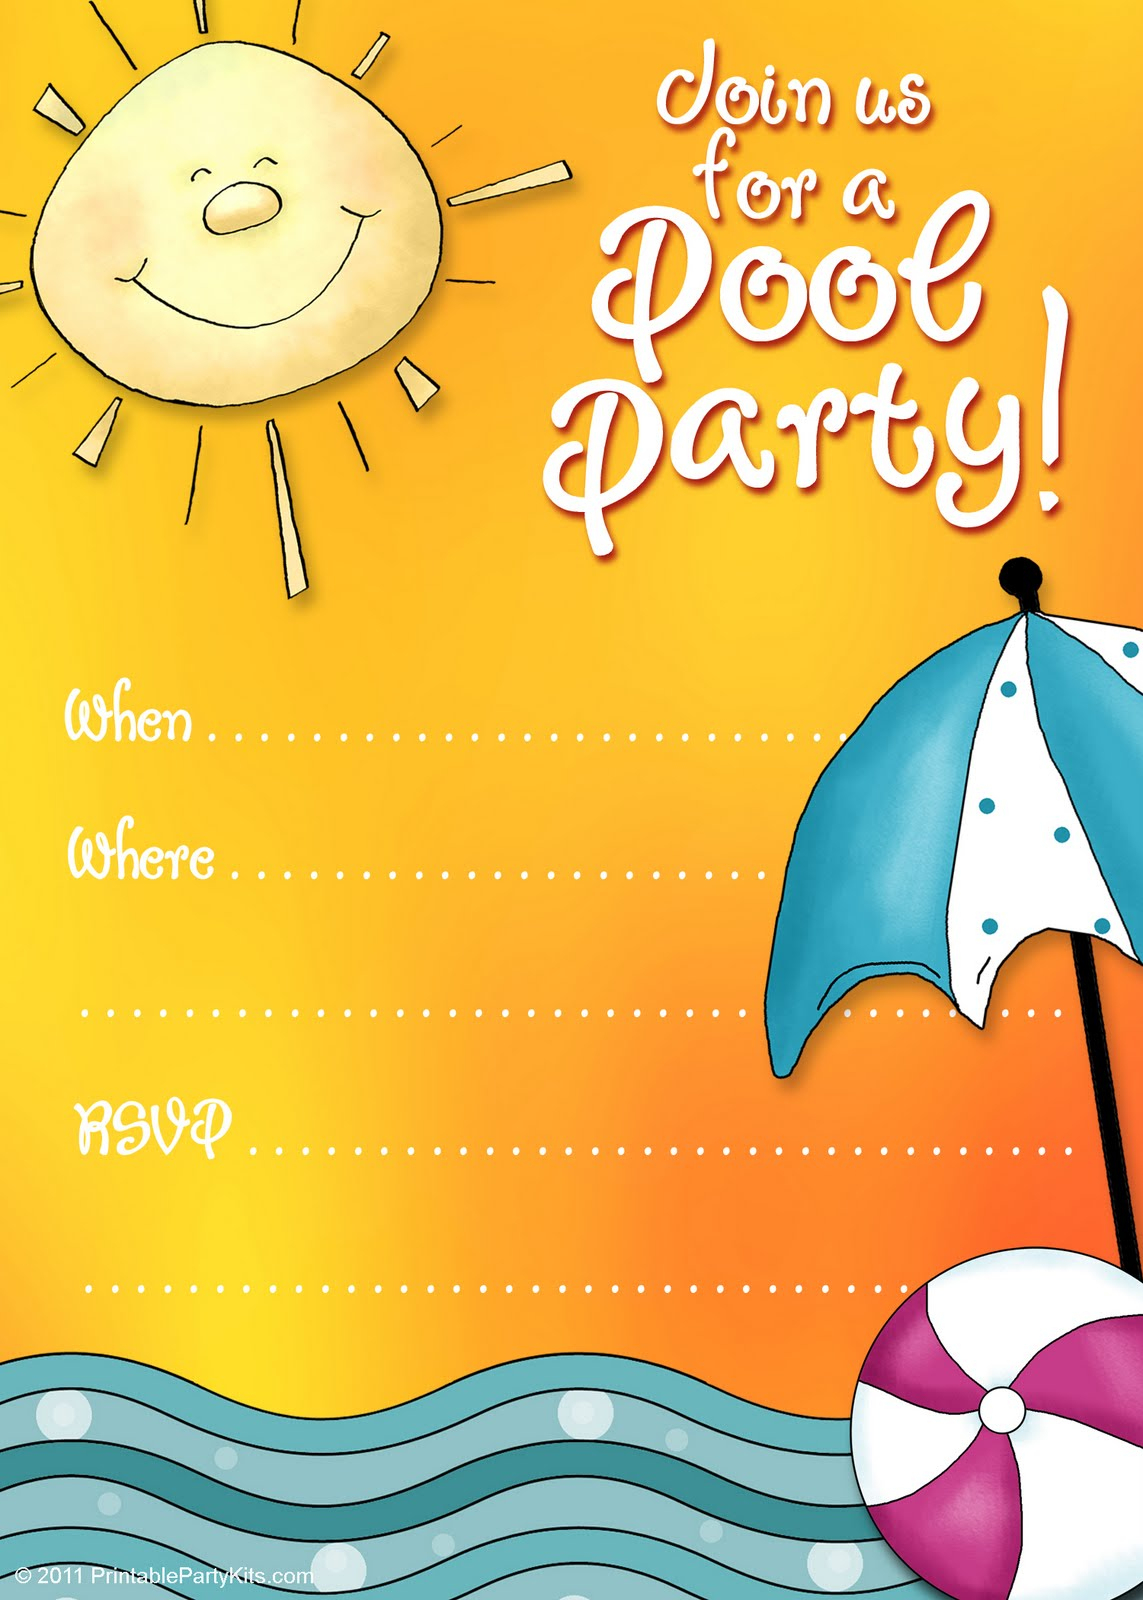 45 Pool Party Invitations | Kittybabylove - Free Printable Pool Party Birthday Invitations